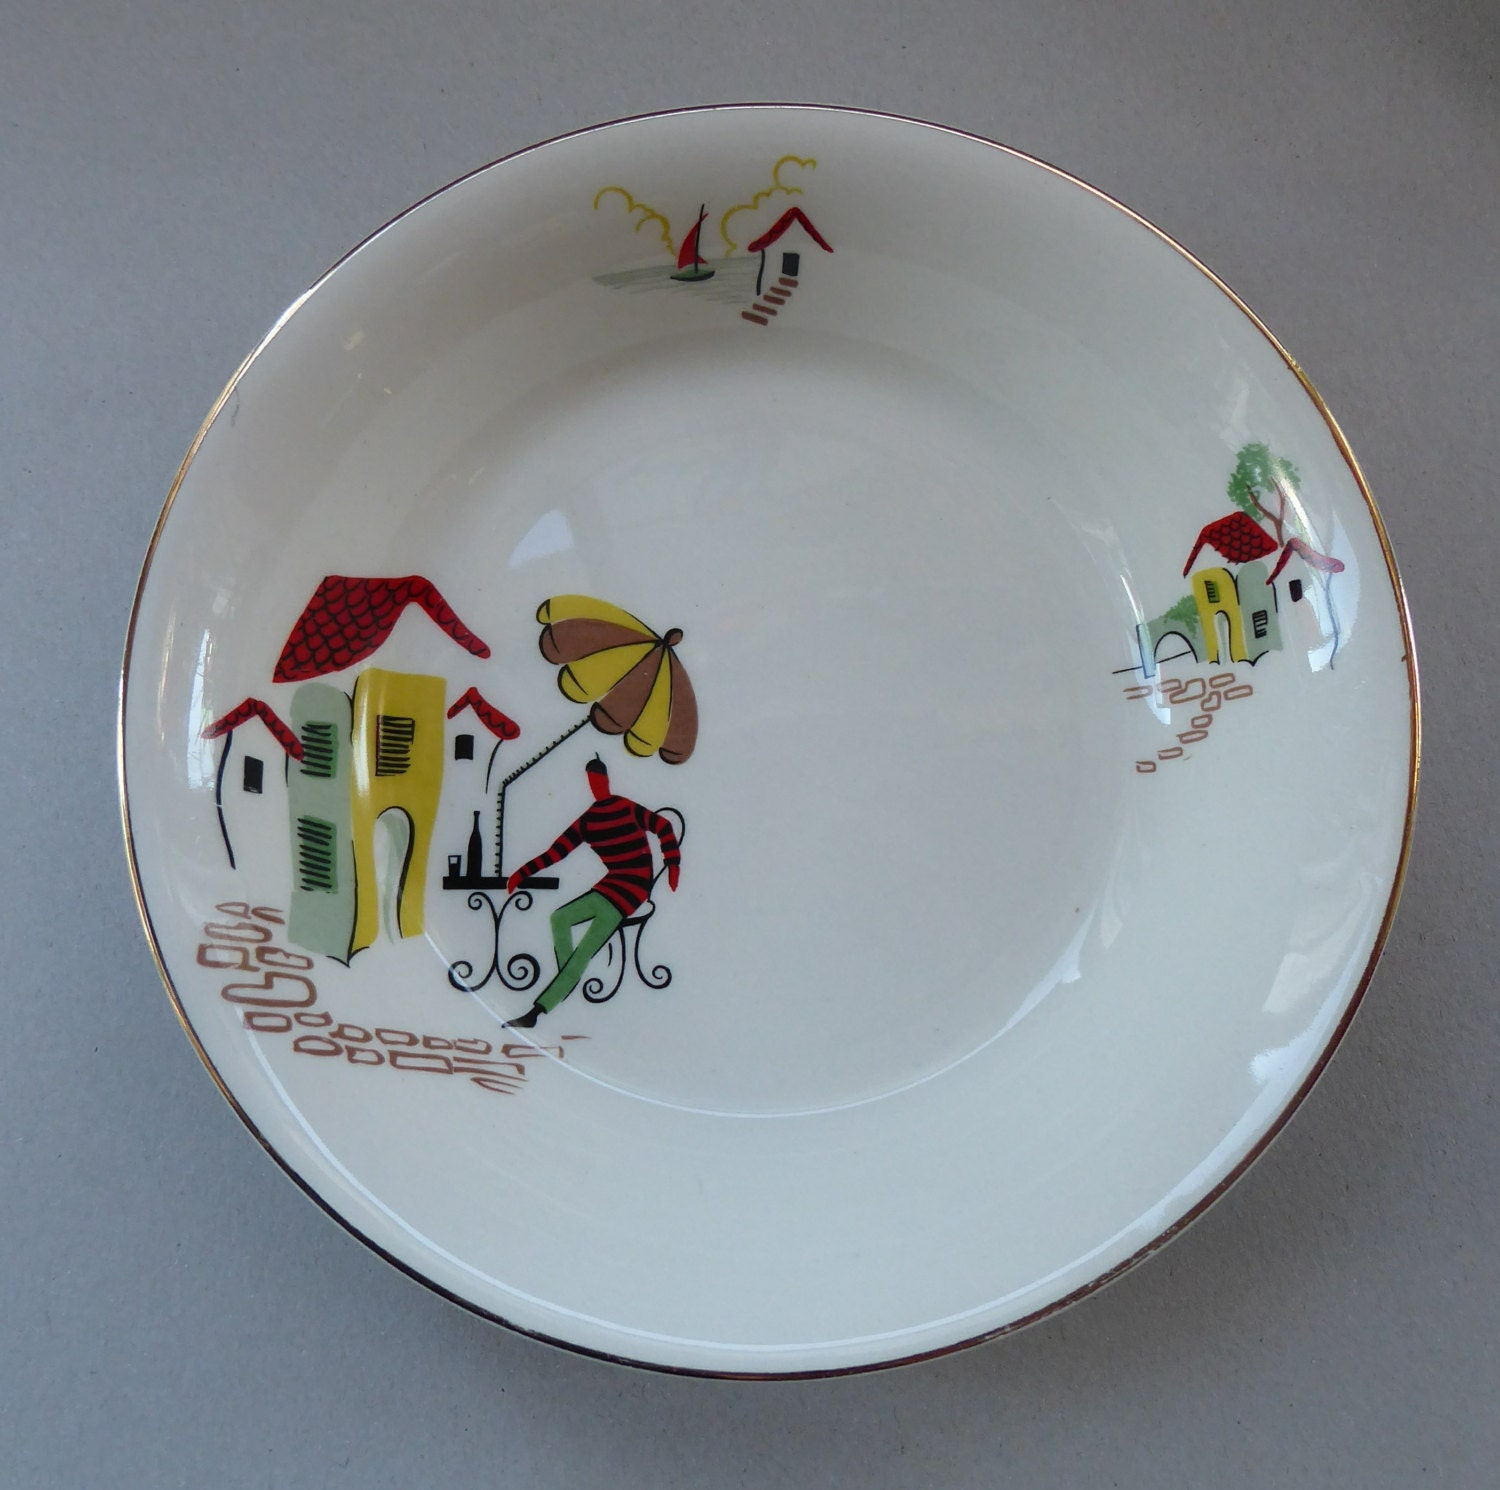 Fabulous Vintage 1950s Alfred Meakin 7 1/4 inch Pudding Bowl